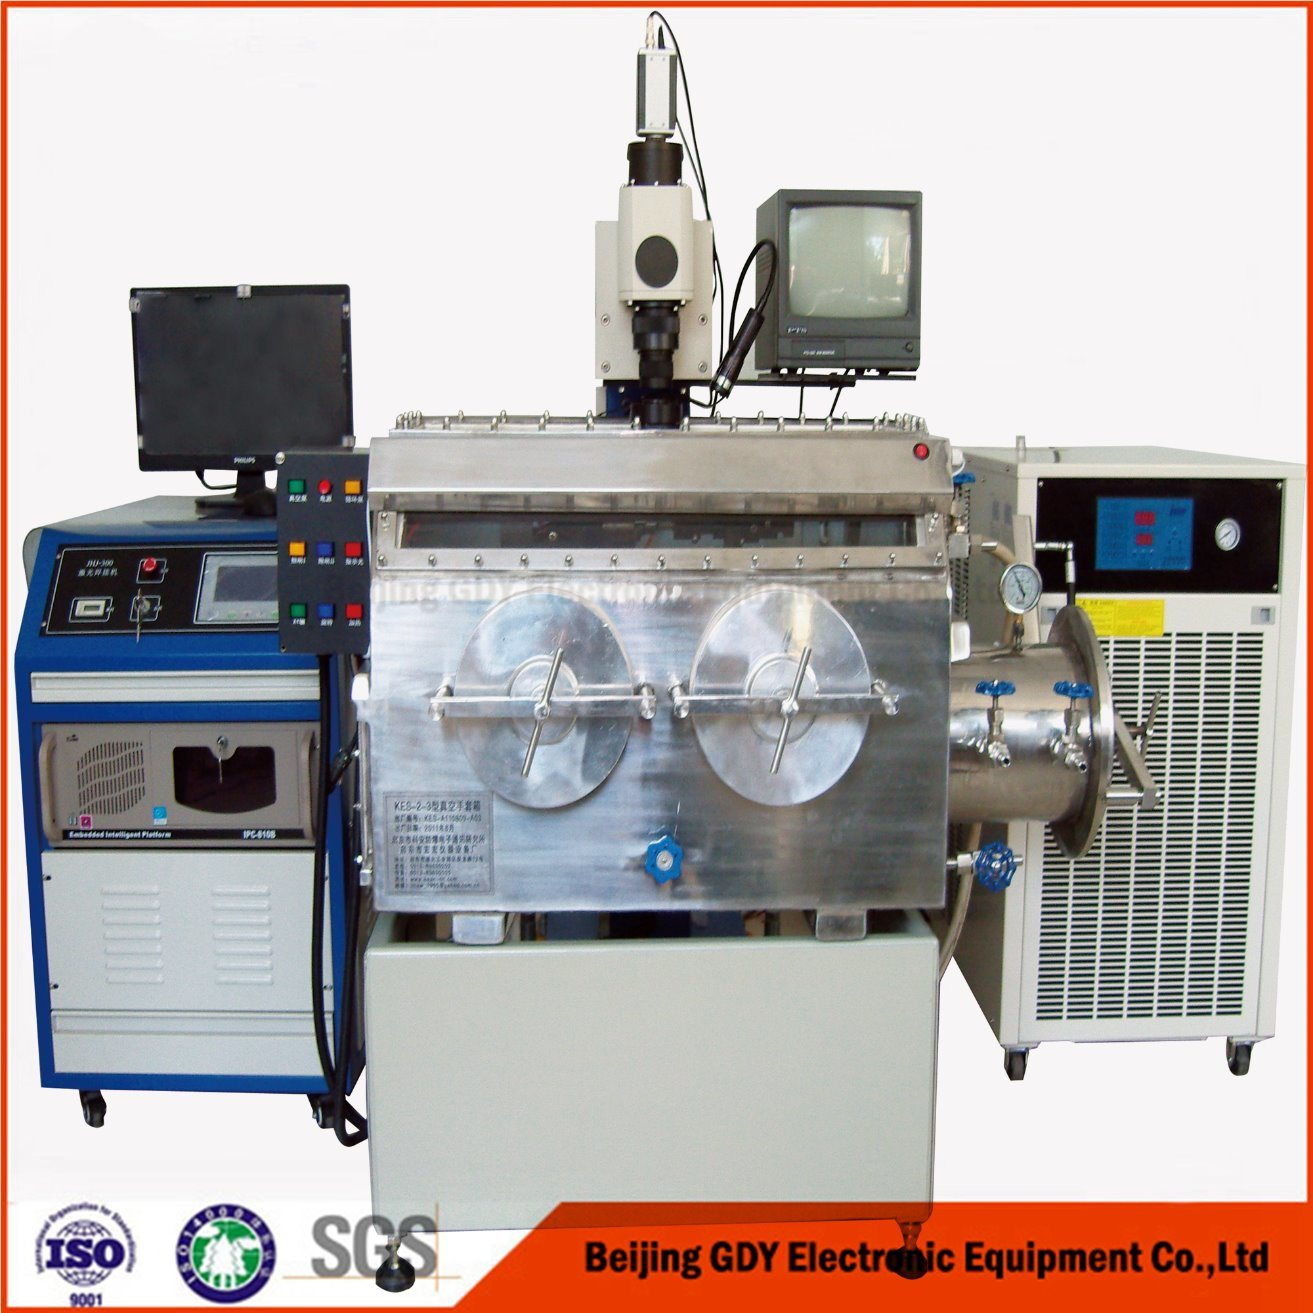 Laser Welding Machinery for Vacuum Seal Made in China Factory